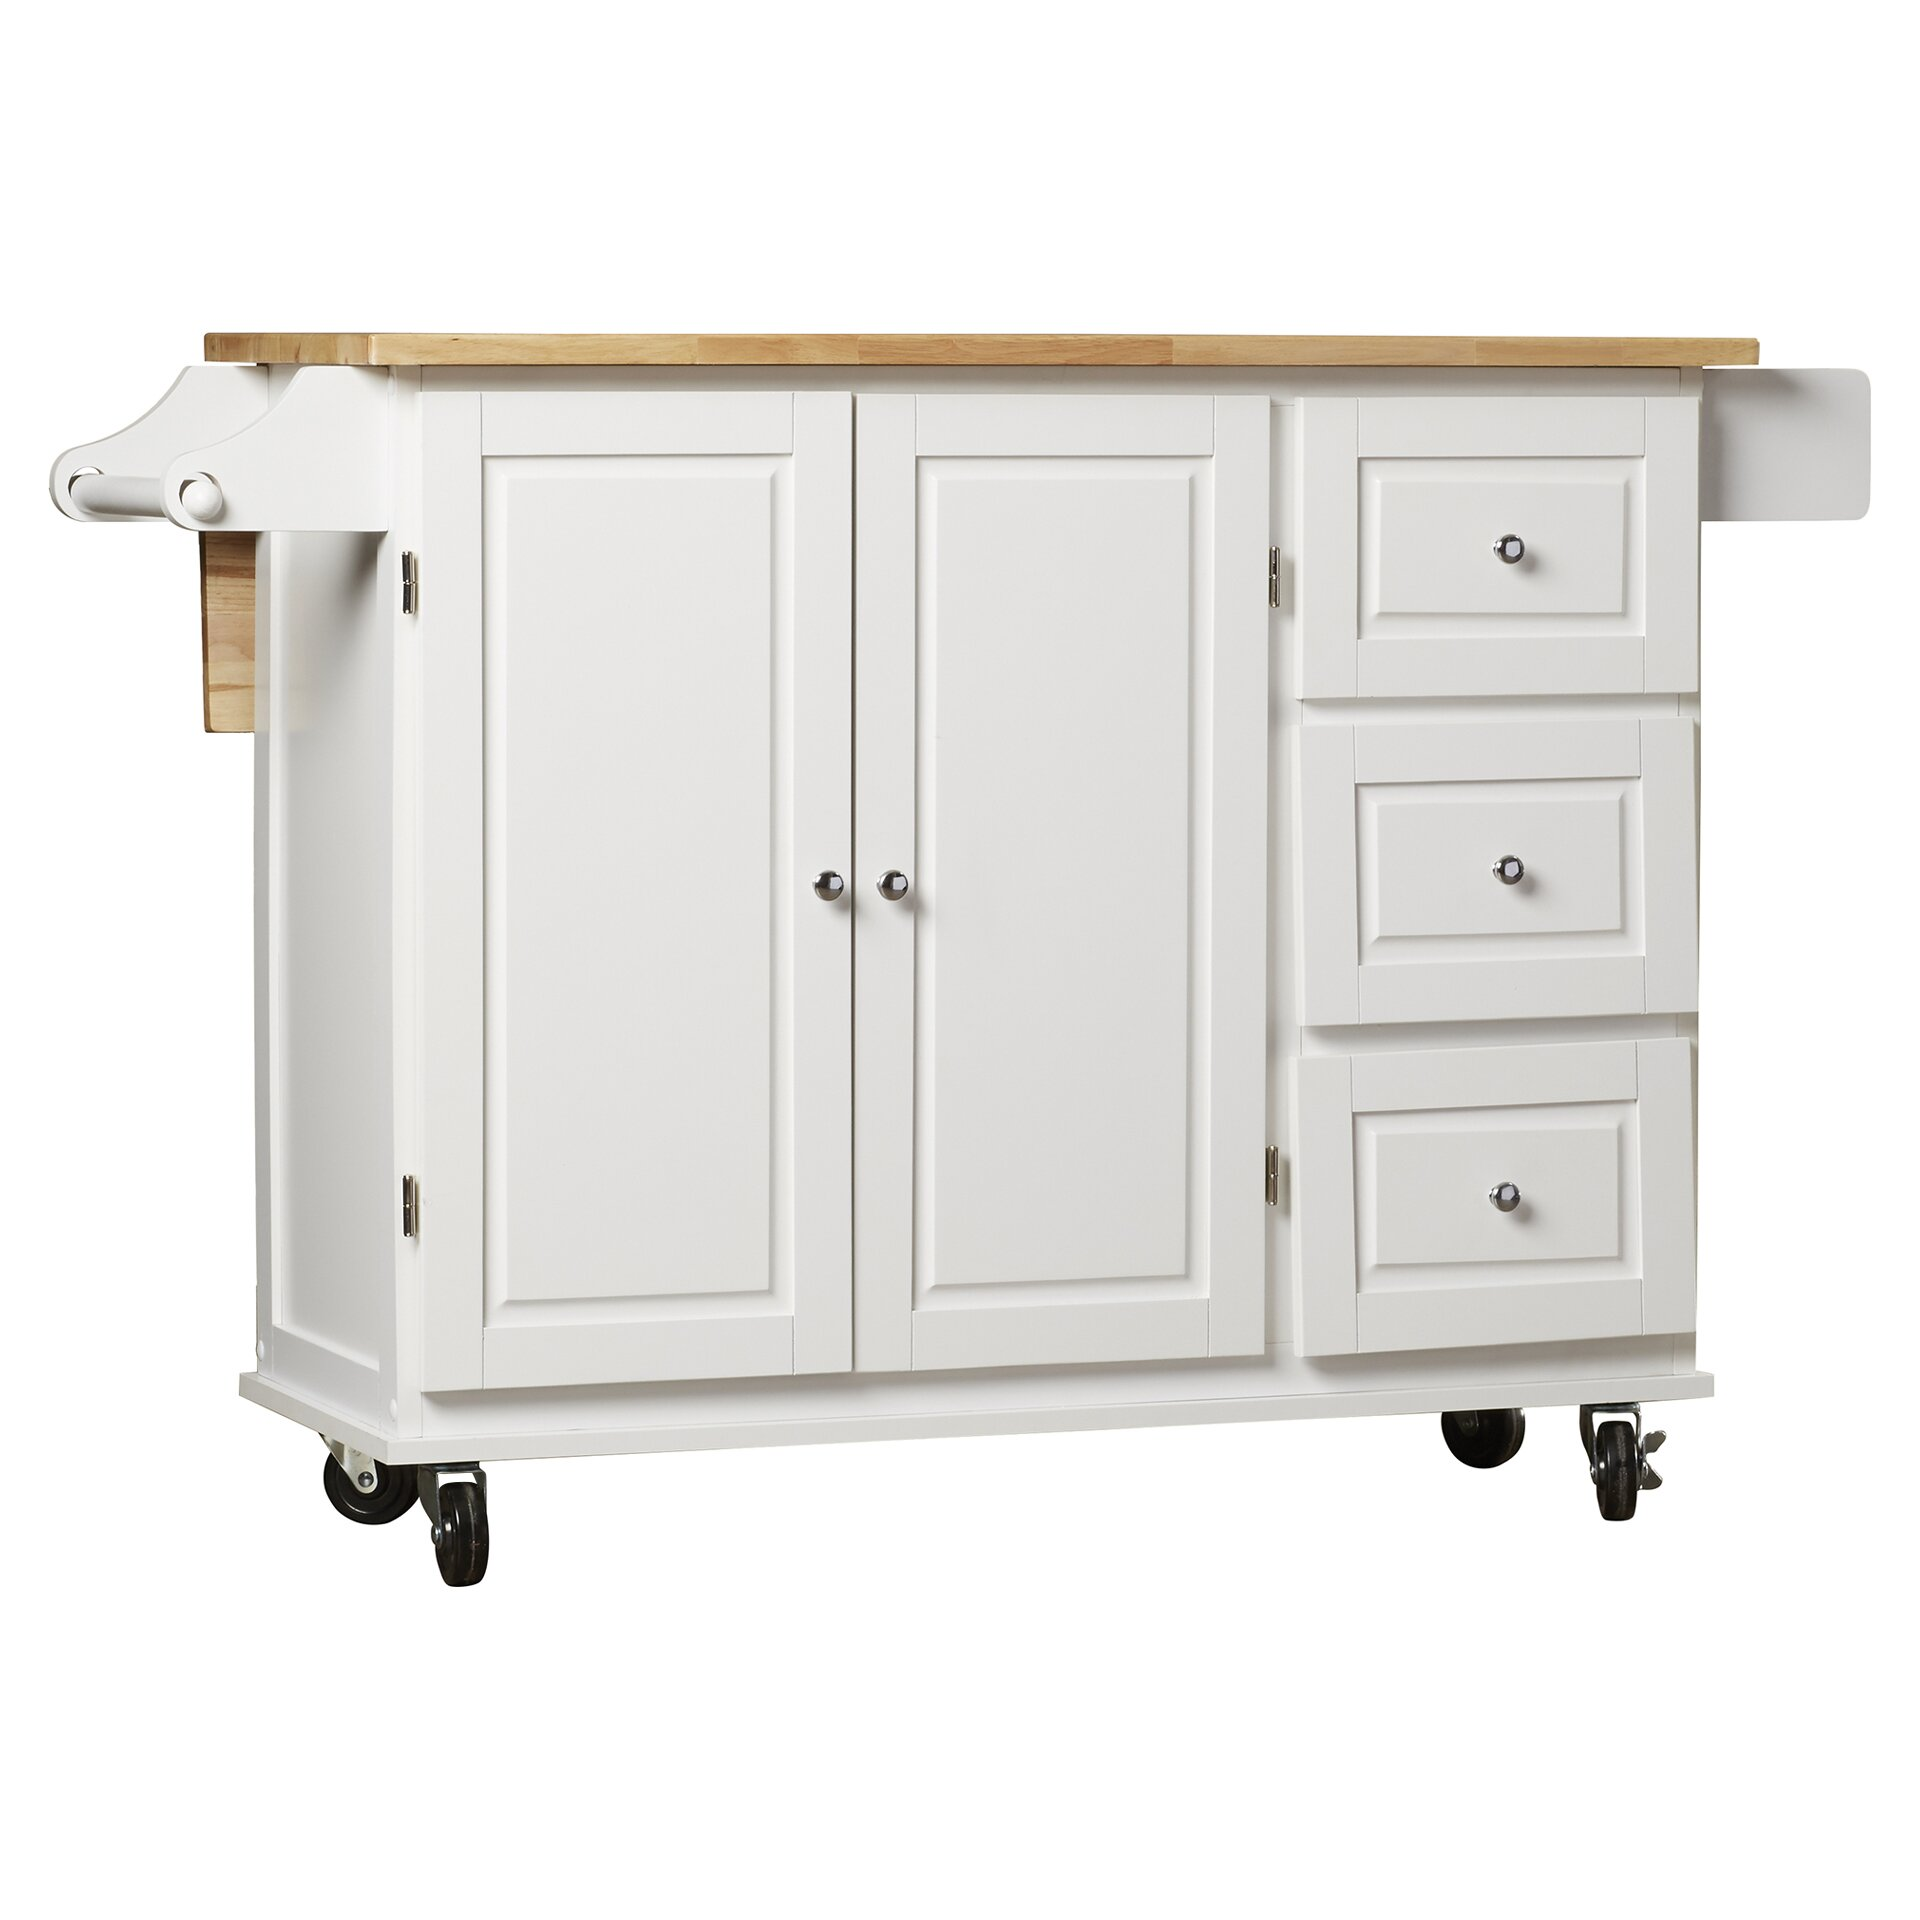 arpdale kitchen island with wood top amp reviews birch lane old paint design